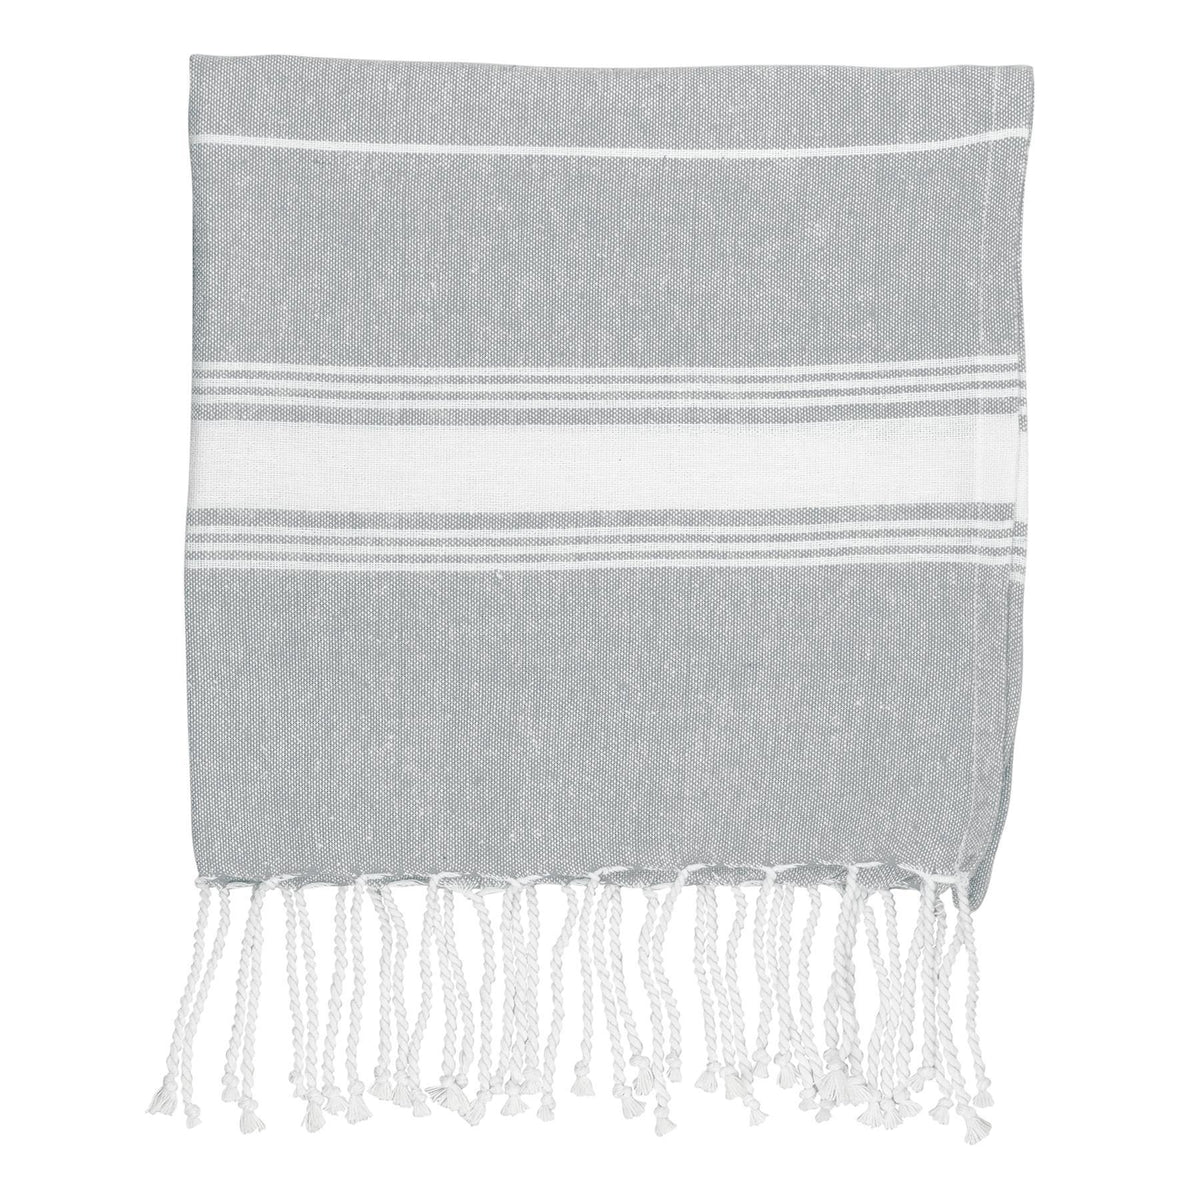 Nicola Spring Kids Turkish Beach Towel - Grey